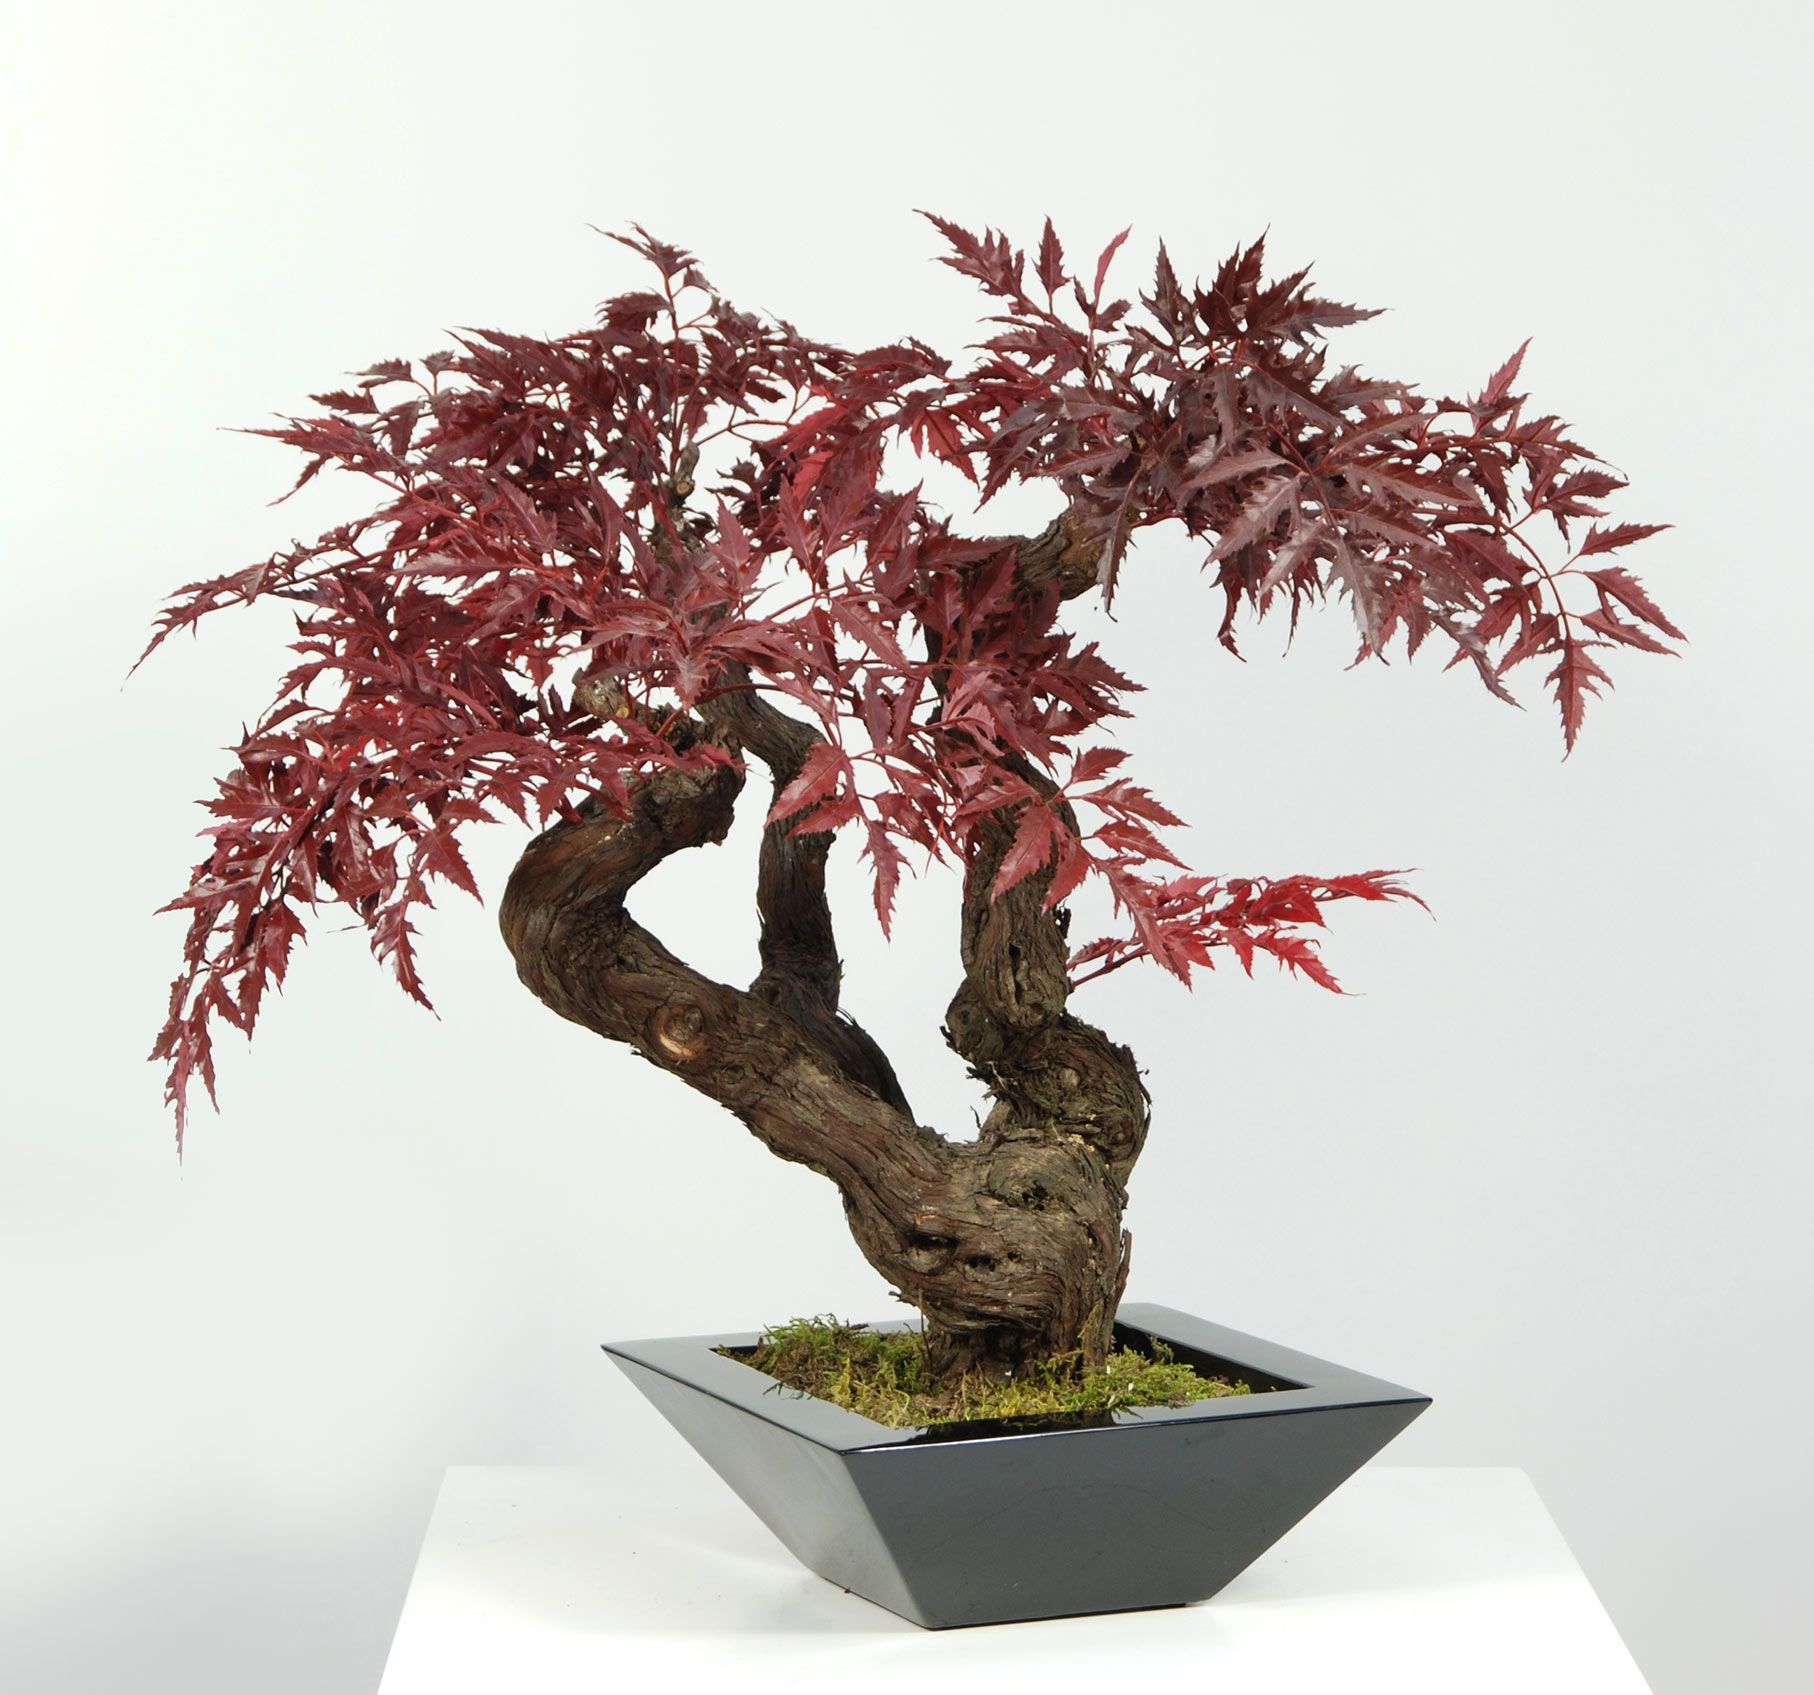 Artificial Red Maple Bonsai Tree Ideal For Table Decor For